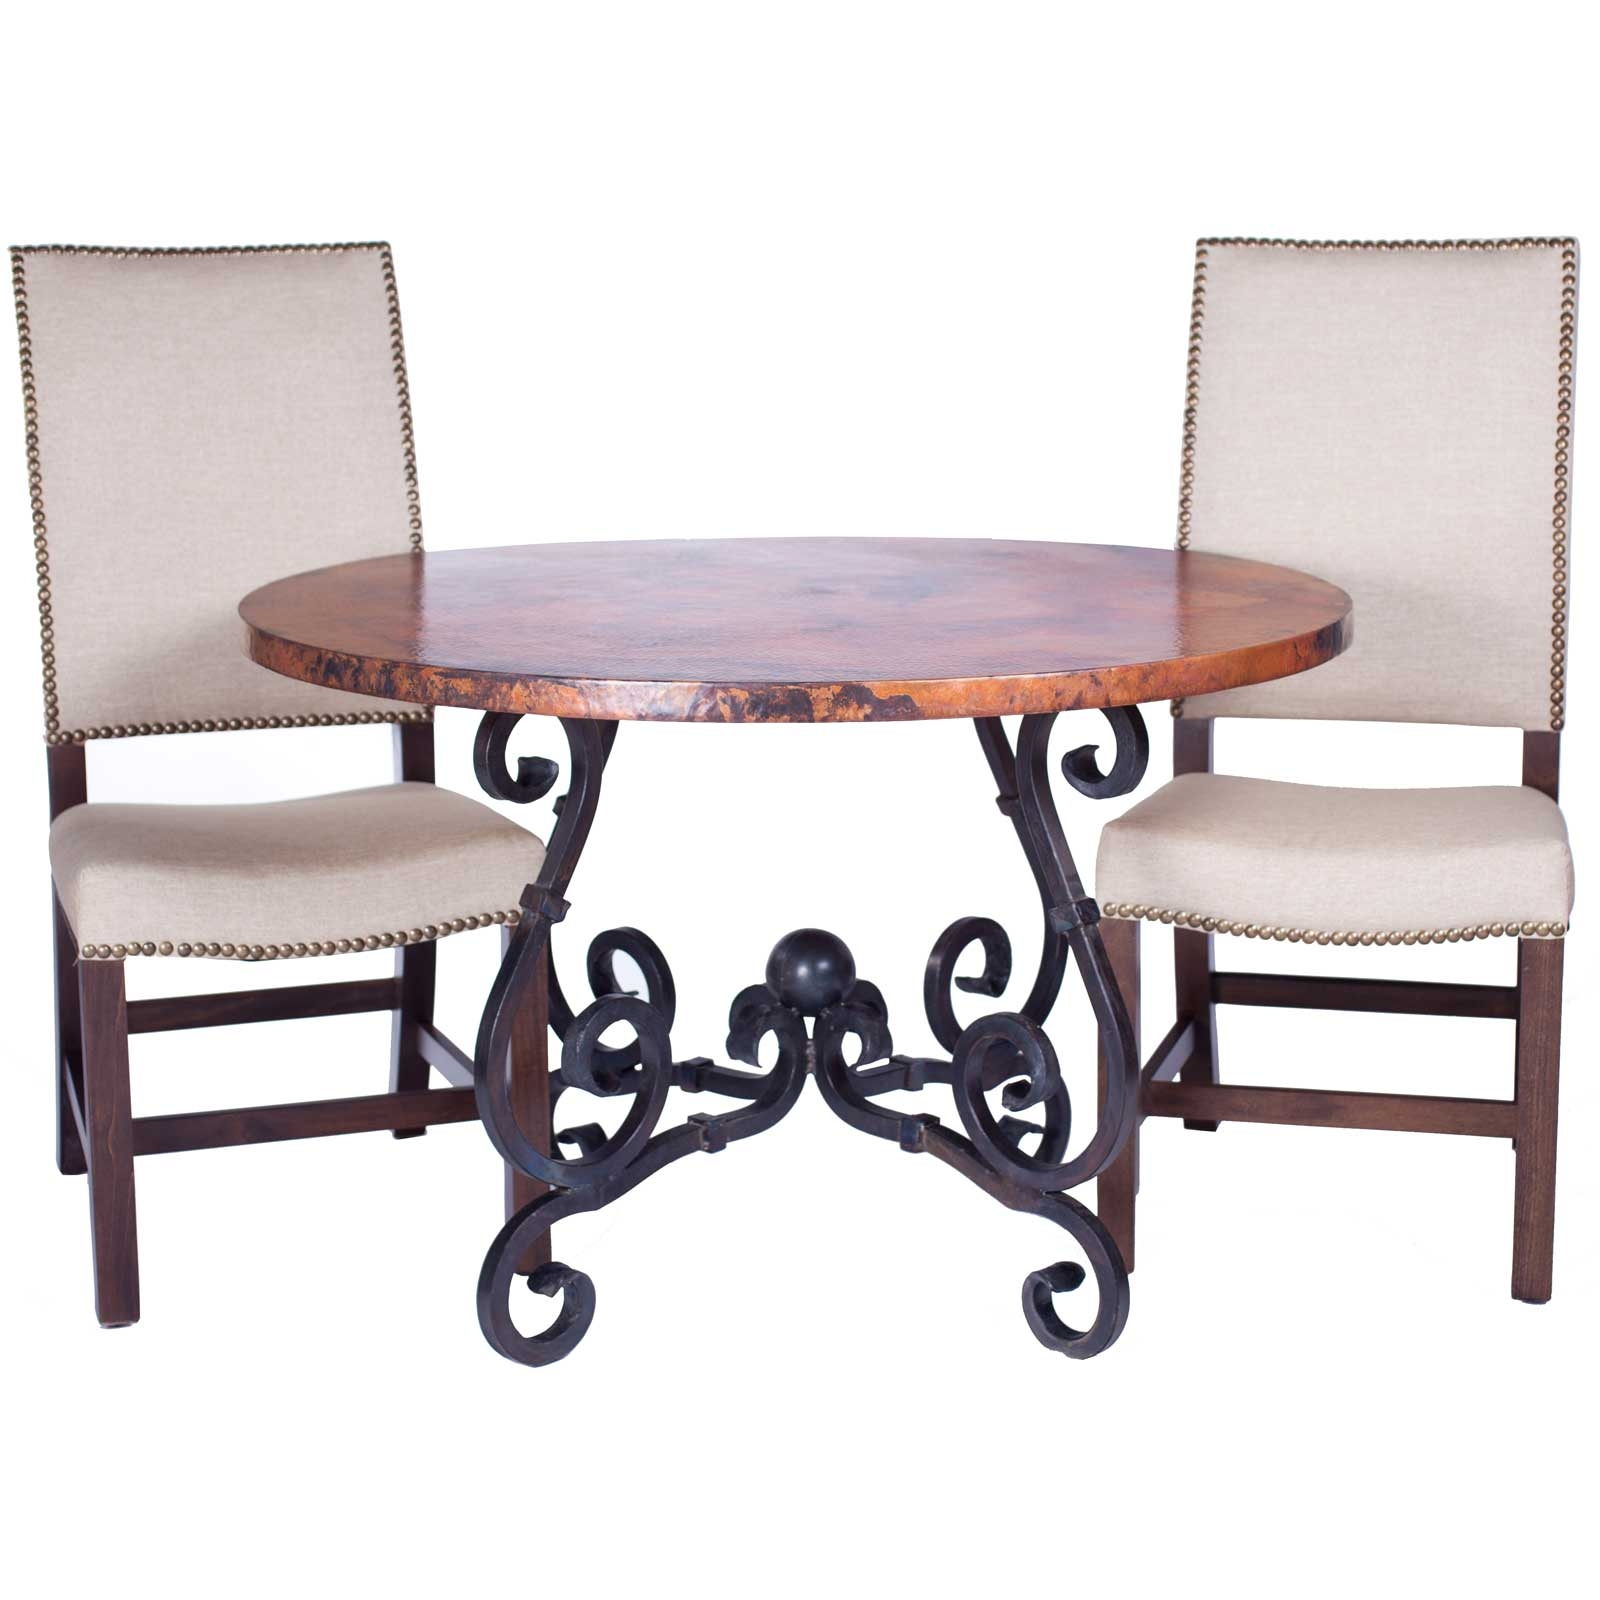 French Iron Dining Table with 60in Round Hammered Copper Top